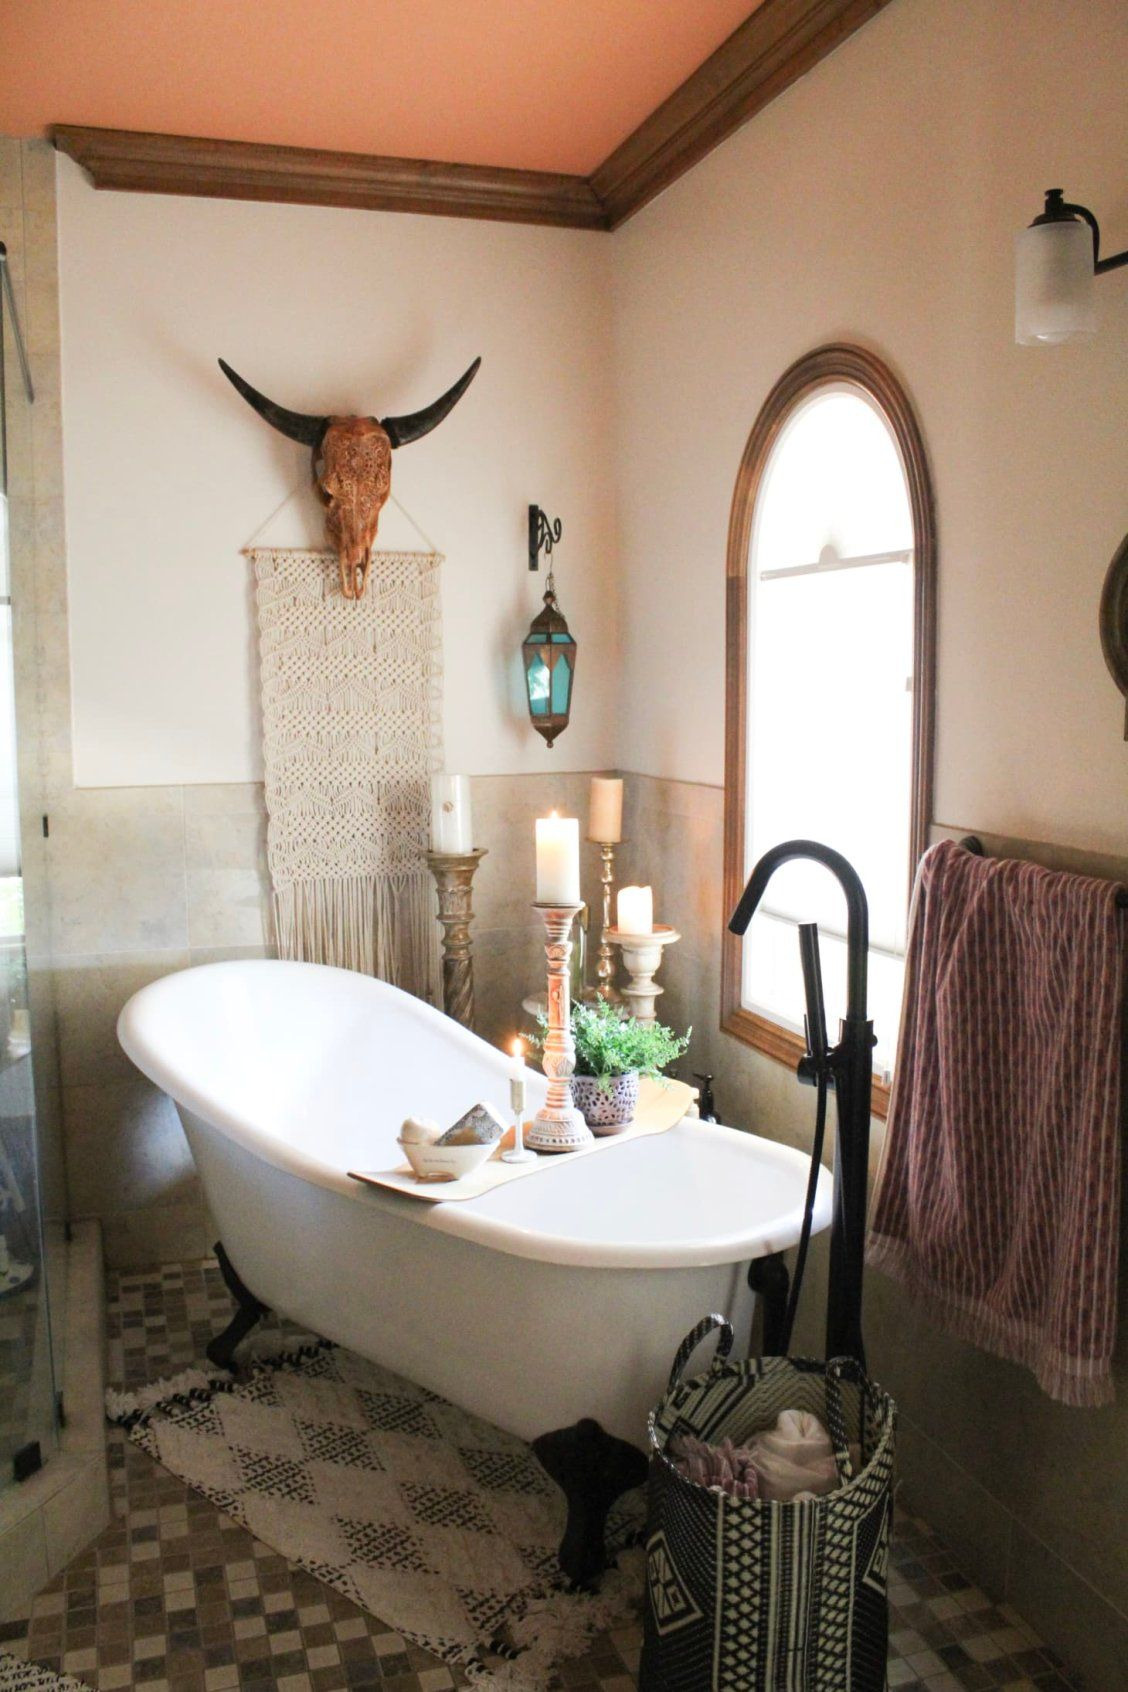 Texas Bathroom Decor Best Of This Eclectic Boho Texas House S Master Bedroom Has An